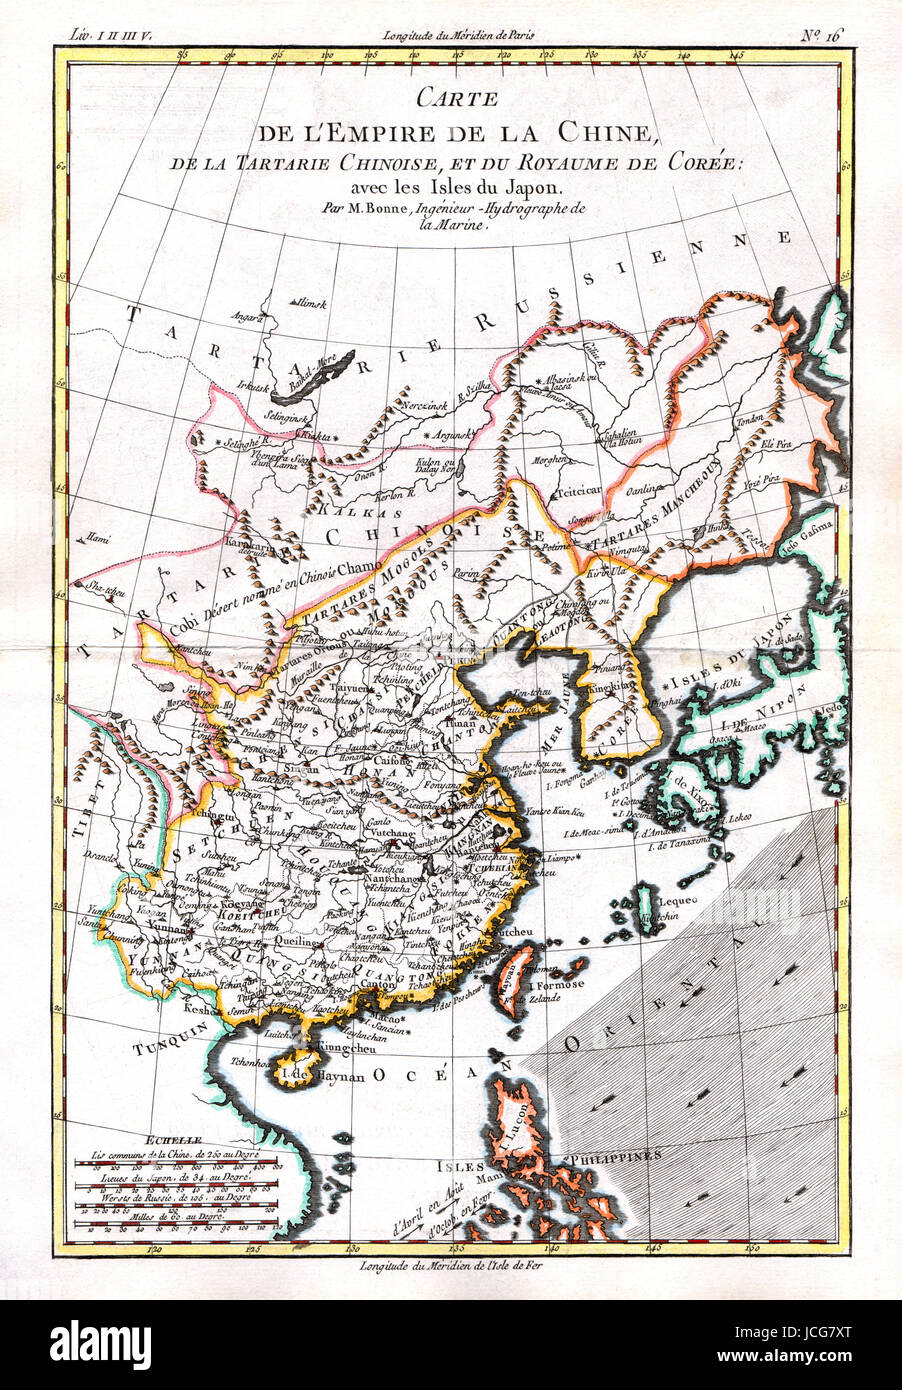 1779 bonne map of the far east showing the empire of china southern 1779 bonne map of the far east showing the empire of china southern japan taiwan as formosa canton hong kong macau pekin hainan and other places gumiabroncs Image collections